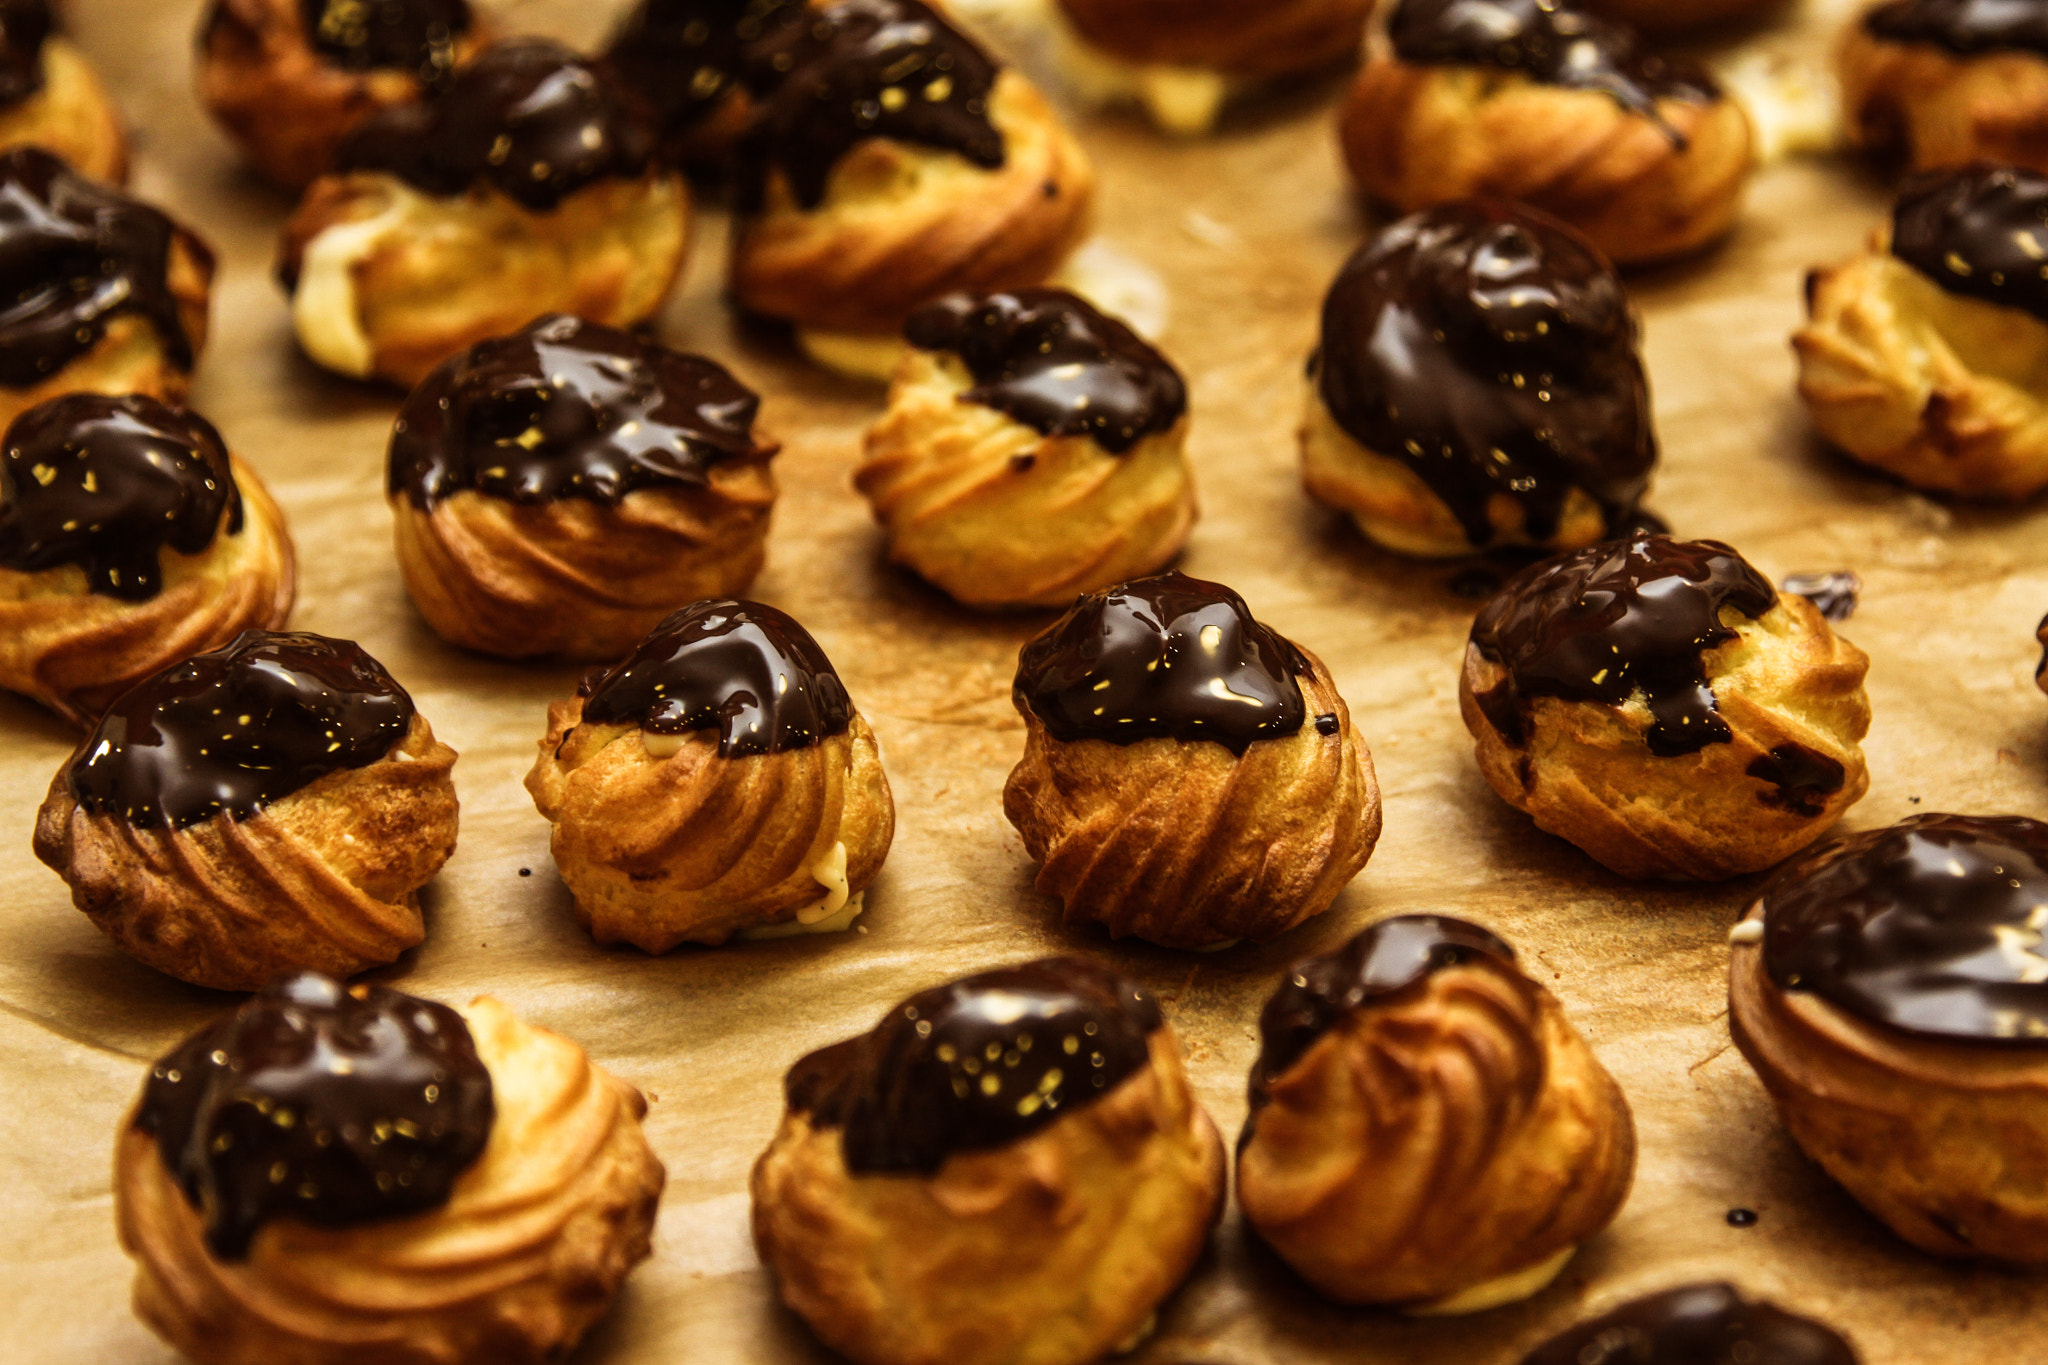 Photograph Pastries with patisserie cream by yuval shohat on 500px